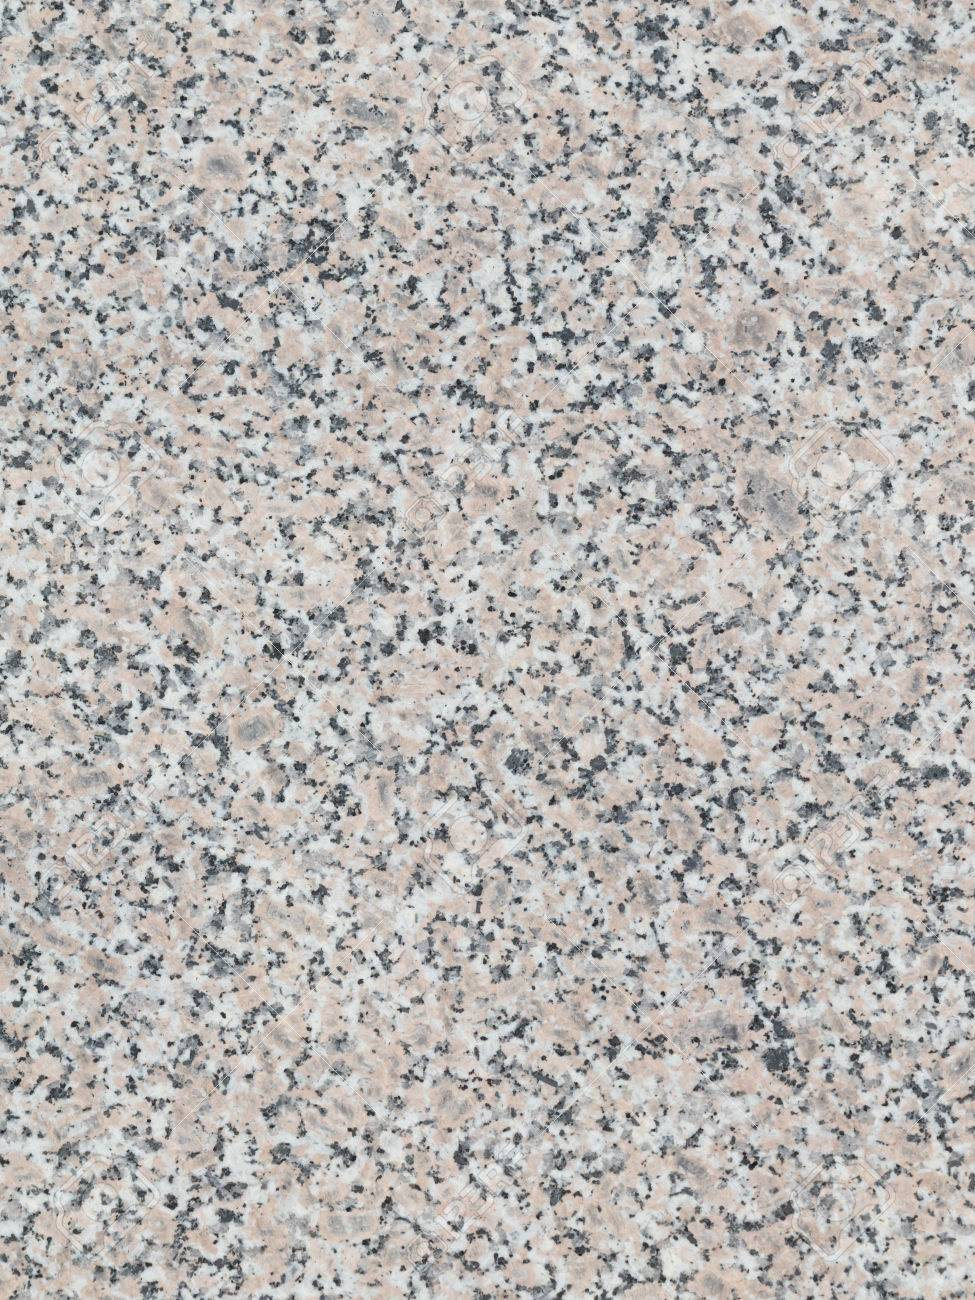 texture of gray granite stone with small patches in the slab